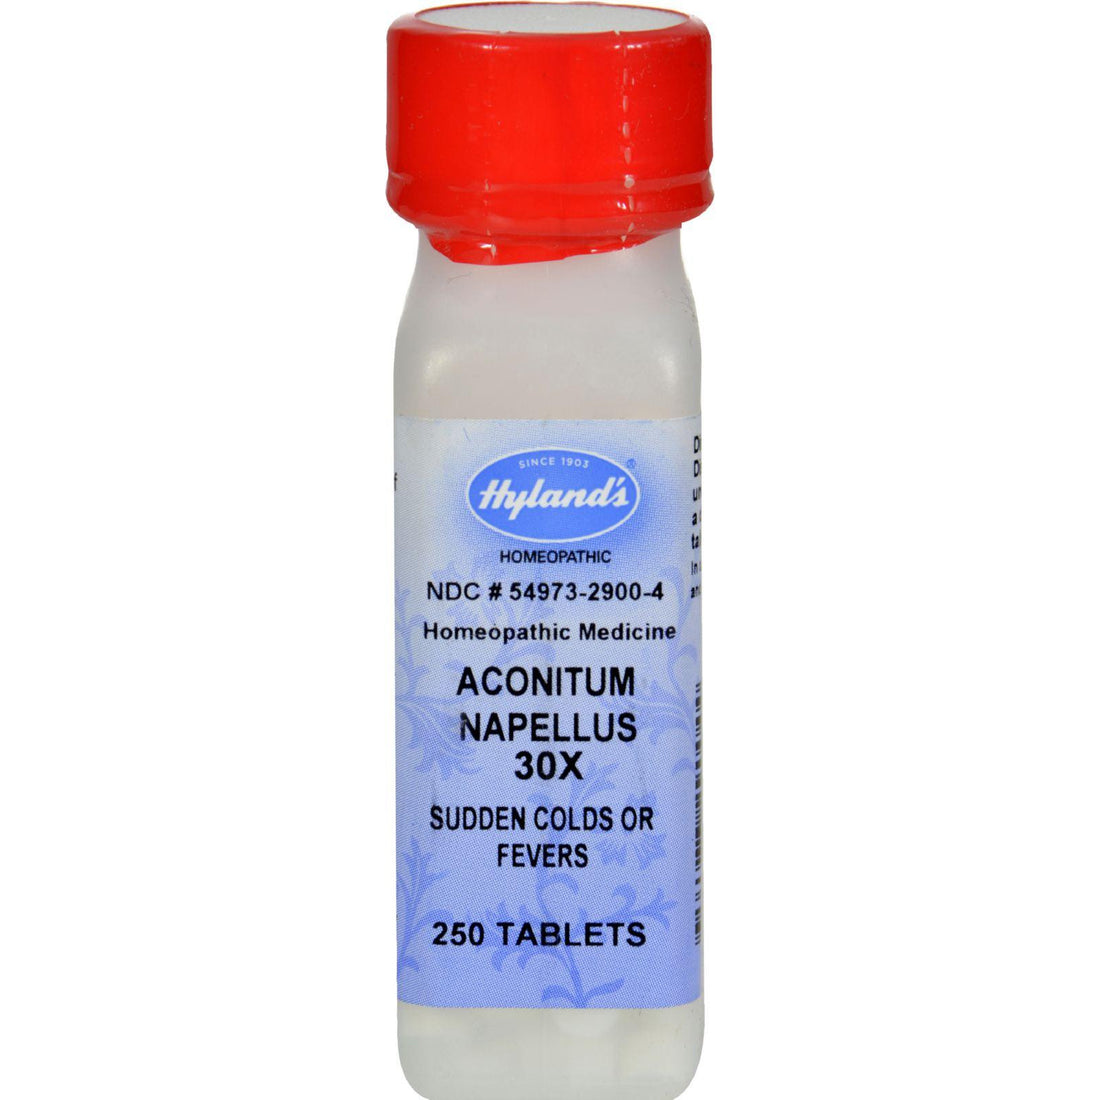 Mother Mantis: Hyland's Aconitum Napellus 30x - 250 Tablets Hyland's